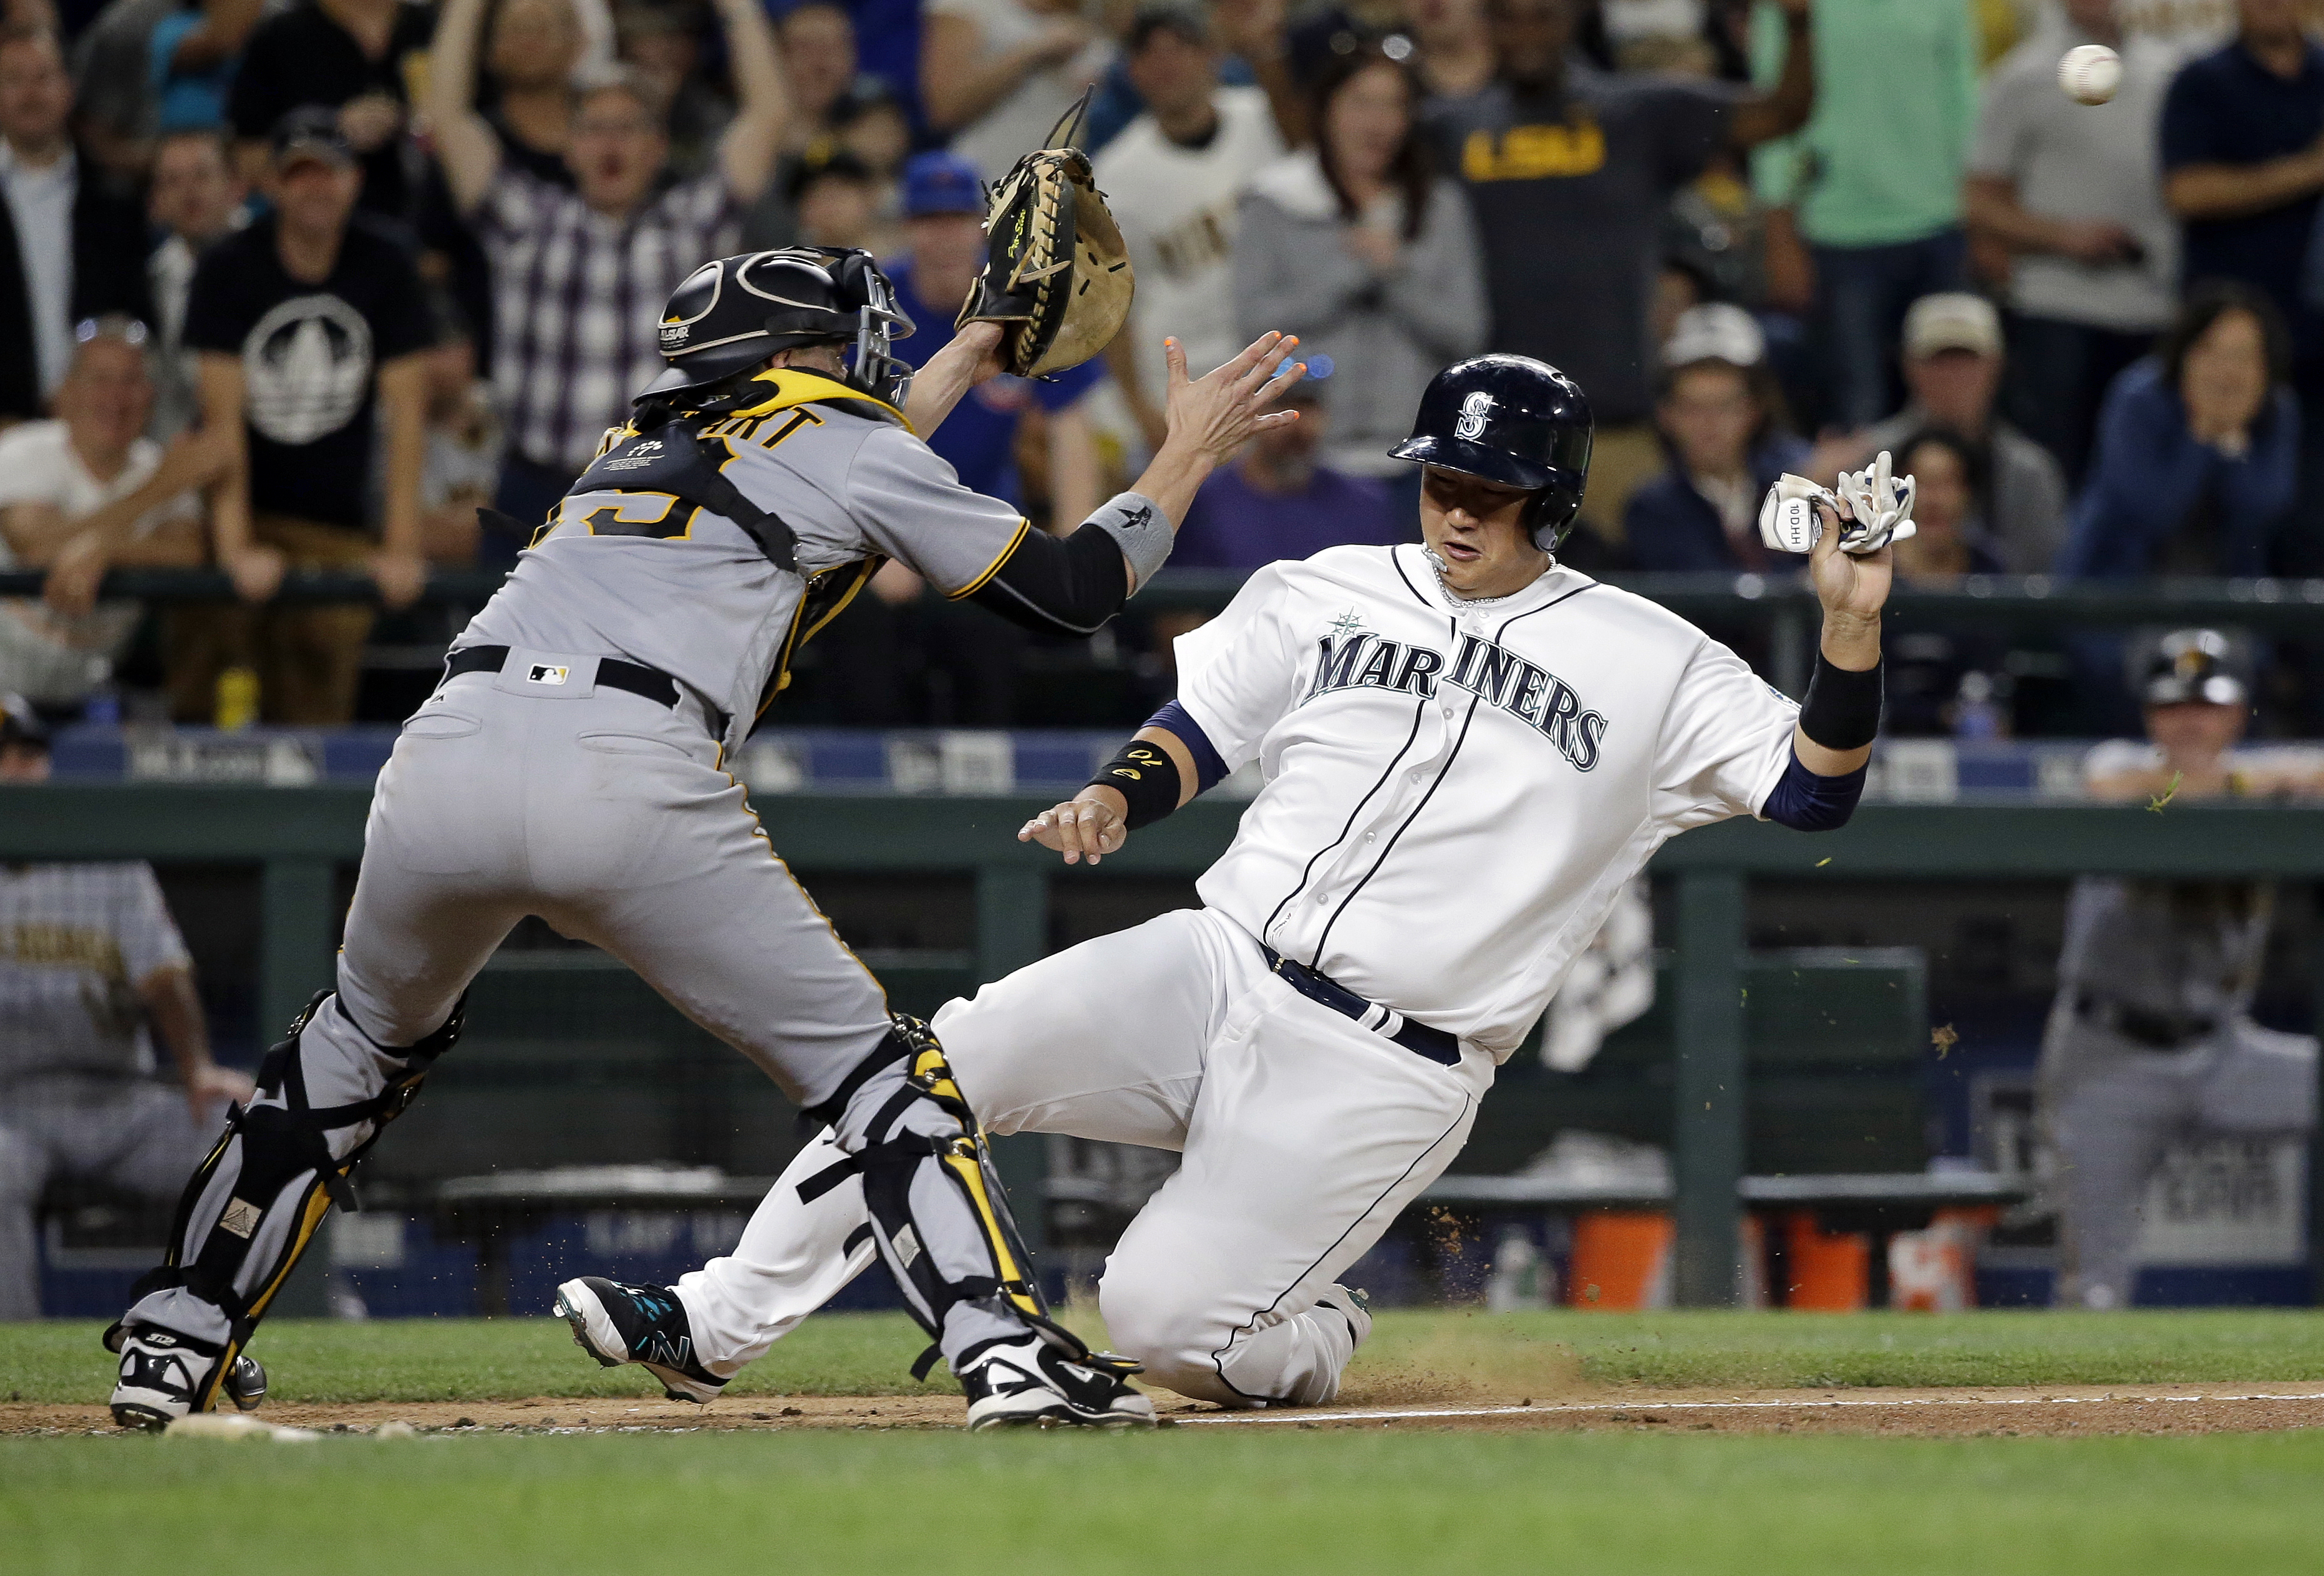 Seattle Mariners' Dae-Ho Lee, right, slides toward Pittsburgh Pirates catcher Chris Stewart before being tagged out at home during the seventh inning of a baseball game Tuesday, June 28, 2016, in Seattle. (AP Photo/Elaine Thompson)